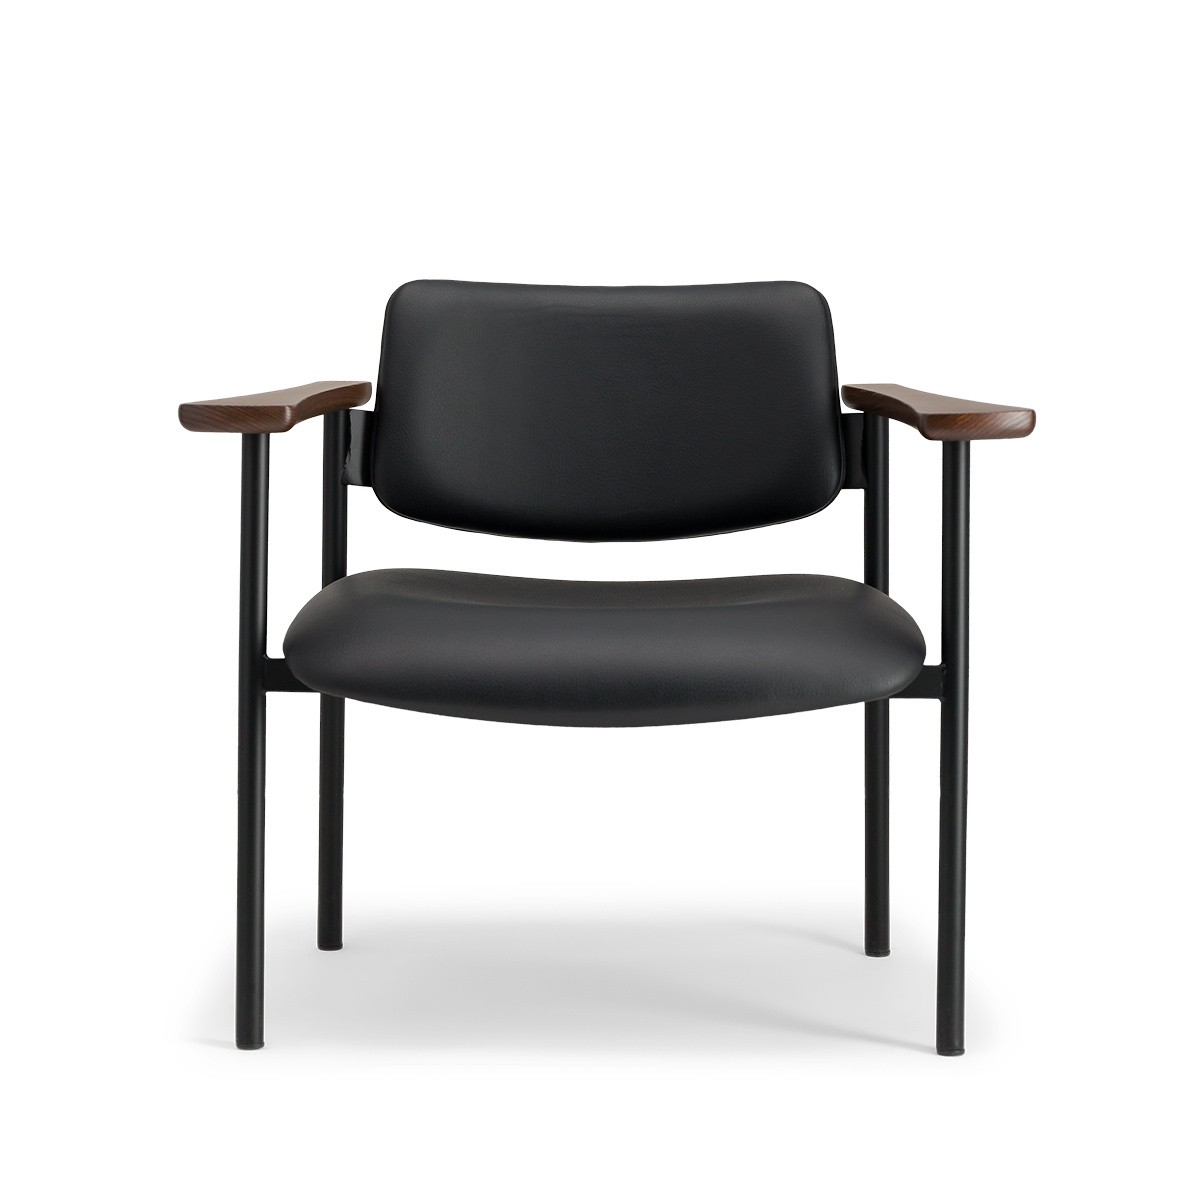 Pio armchair brown wood black leather